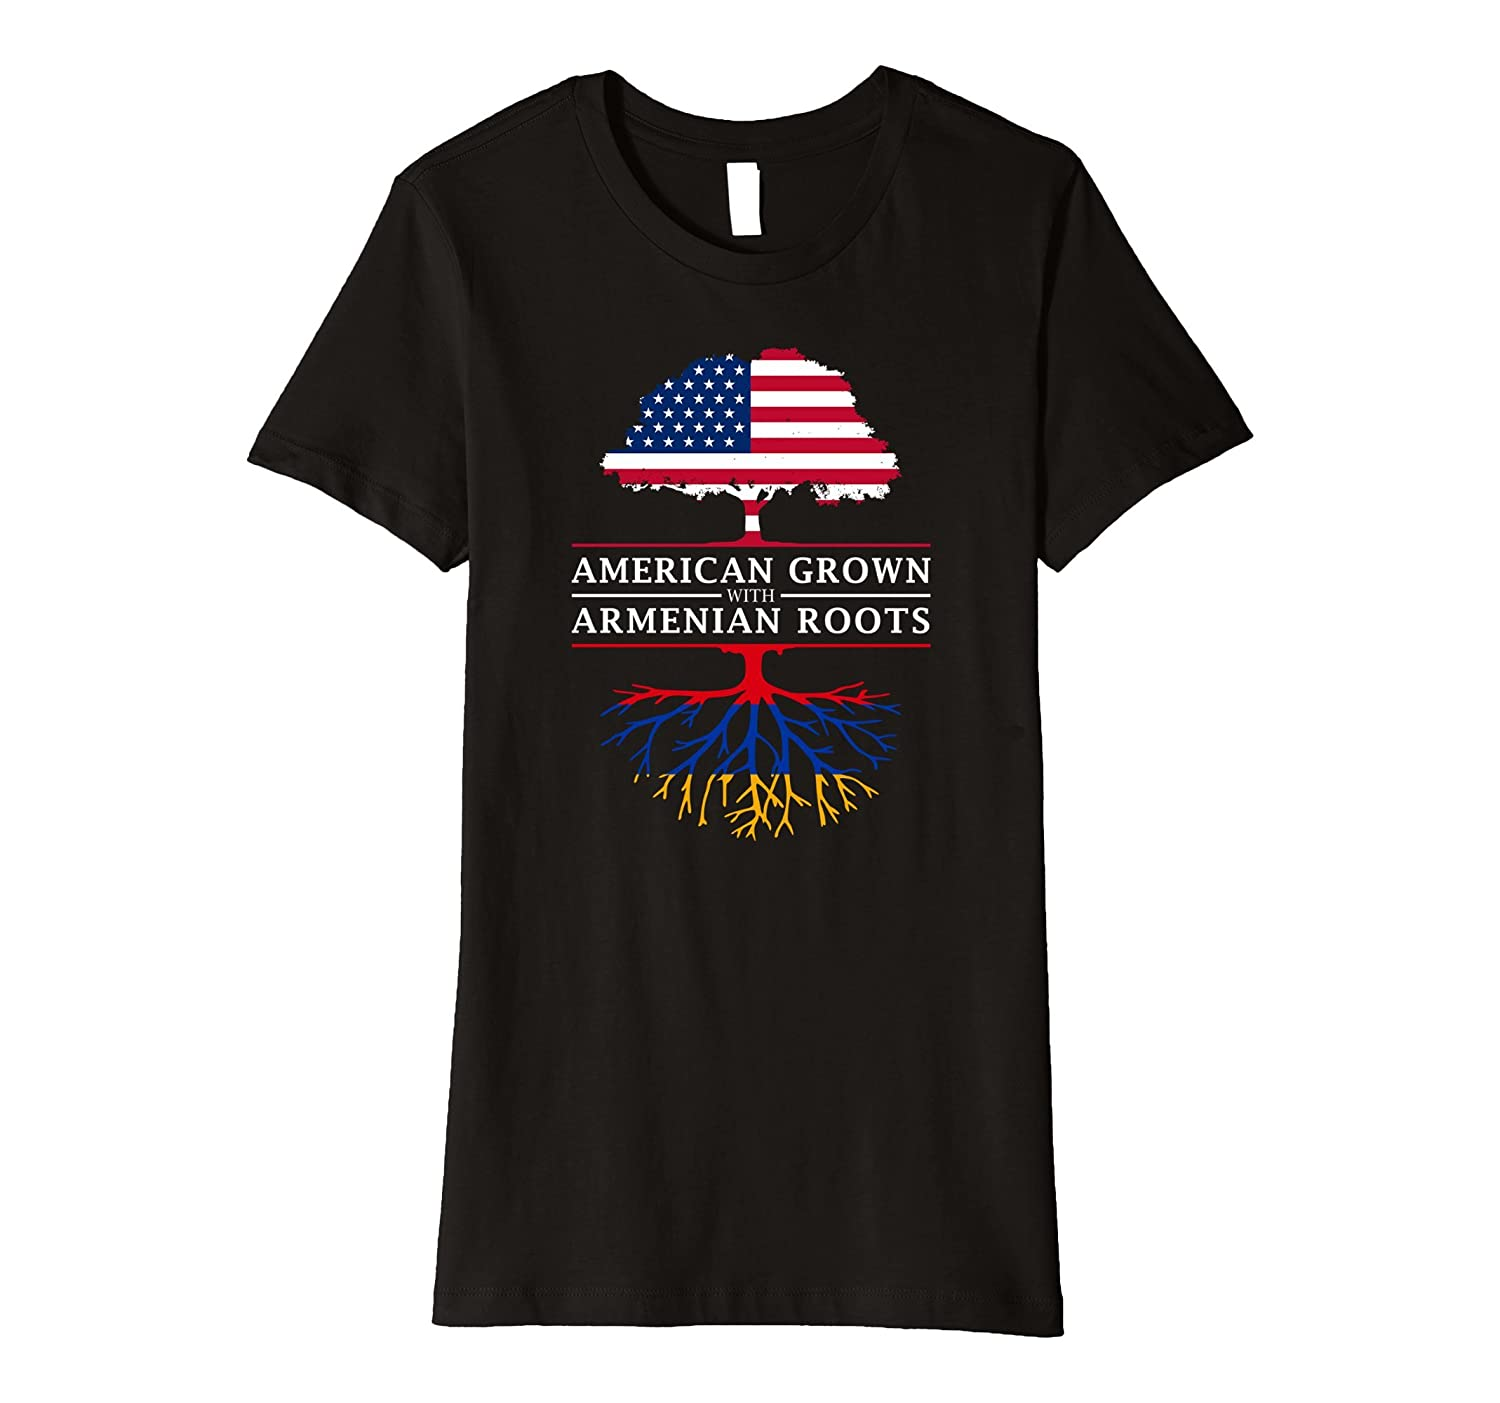 American Grown with Armenian Roots T-Shirt